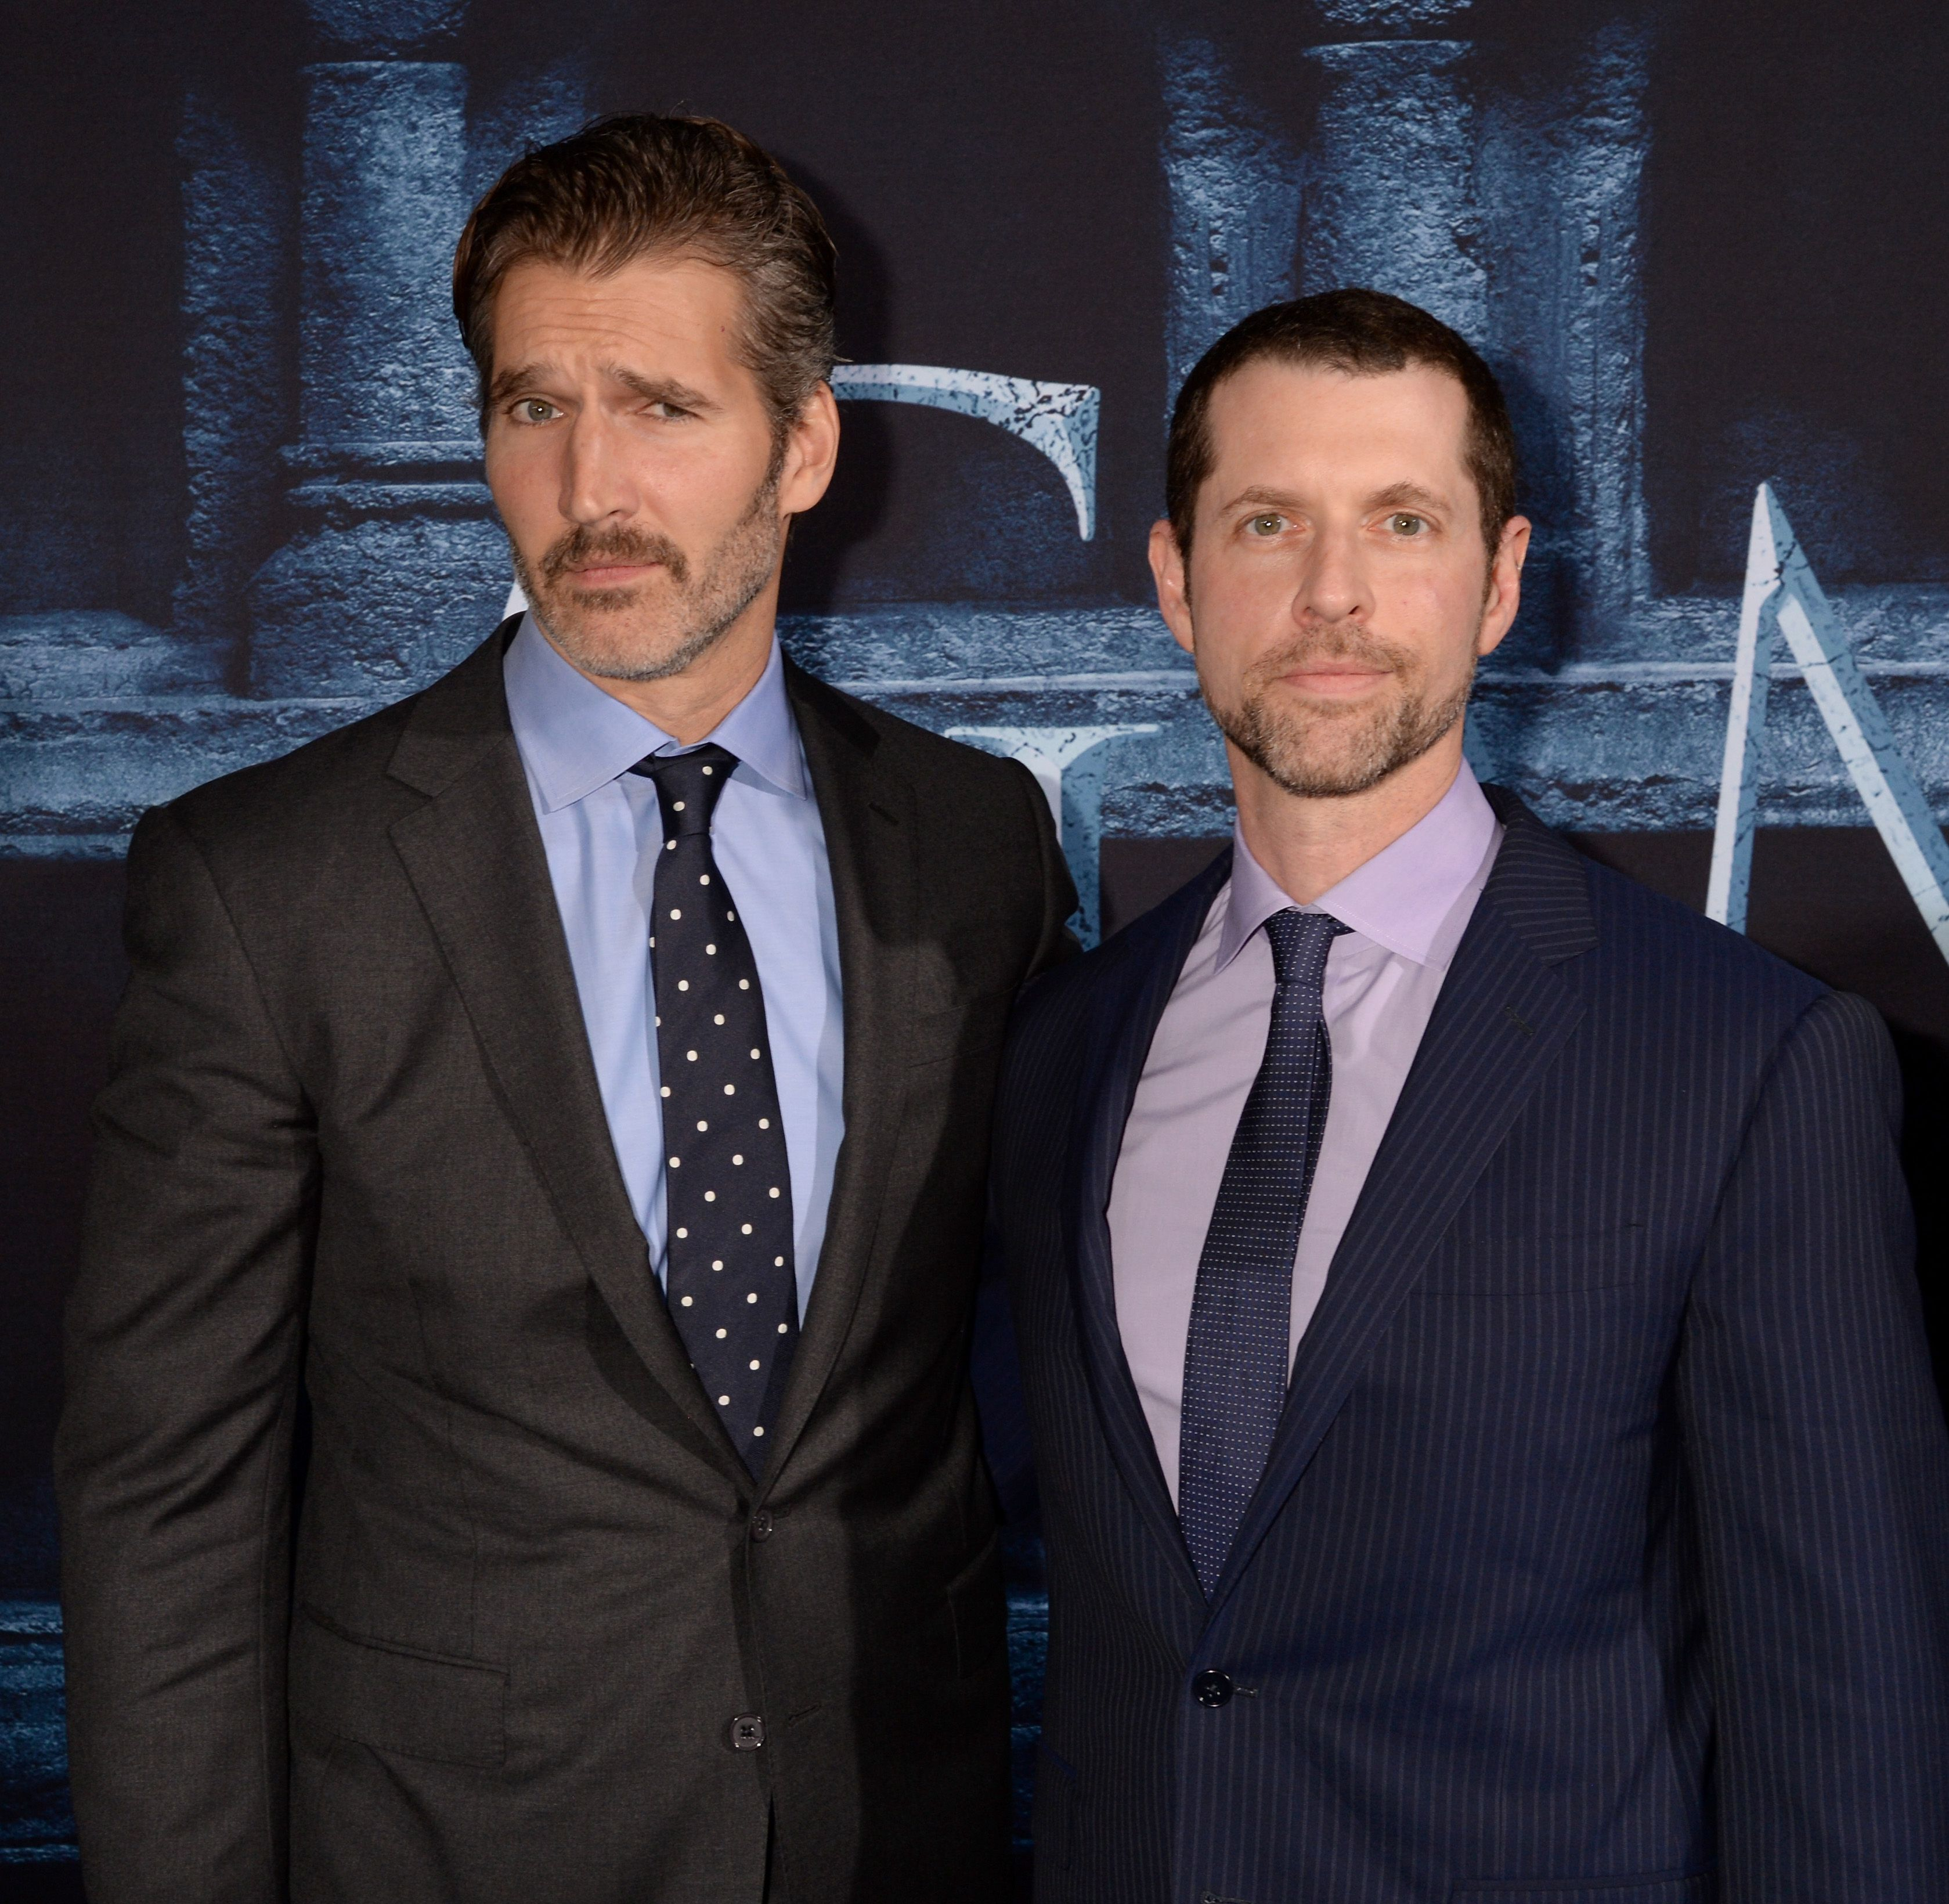 Best Twitter Reactions To Netflix Hiring Game Of Thrones Writers David Benioff And D B Weiss